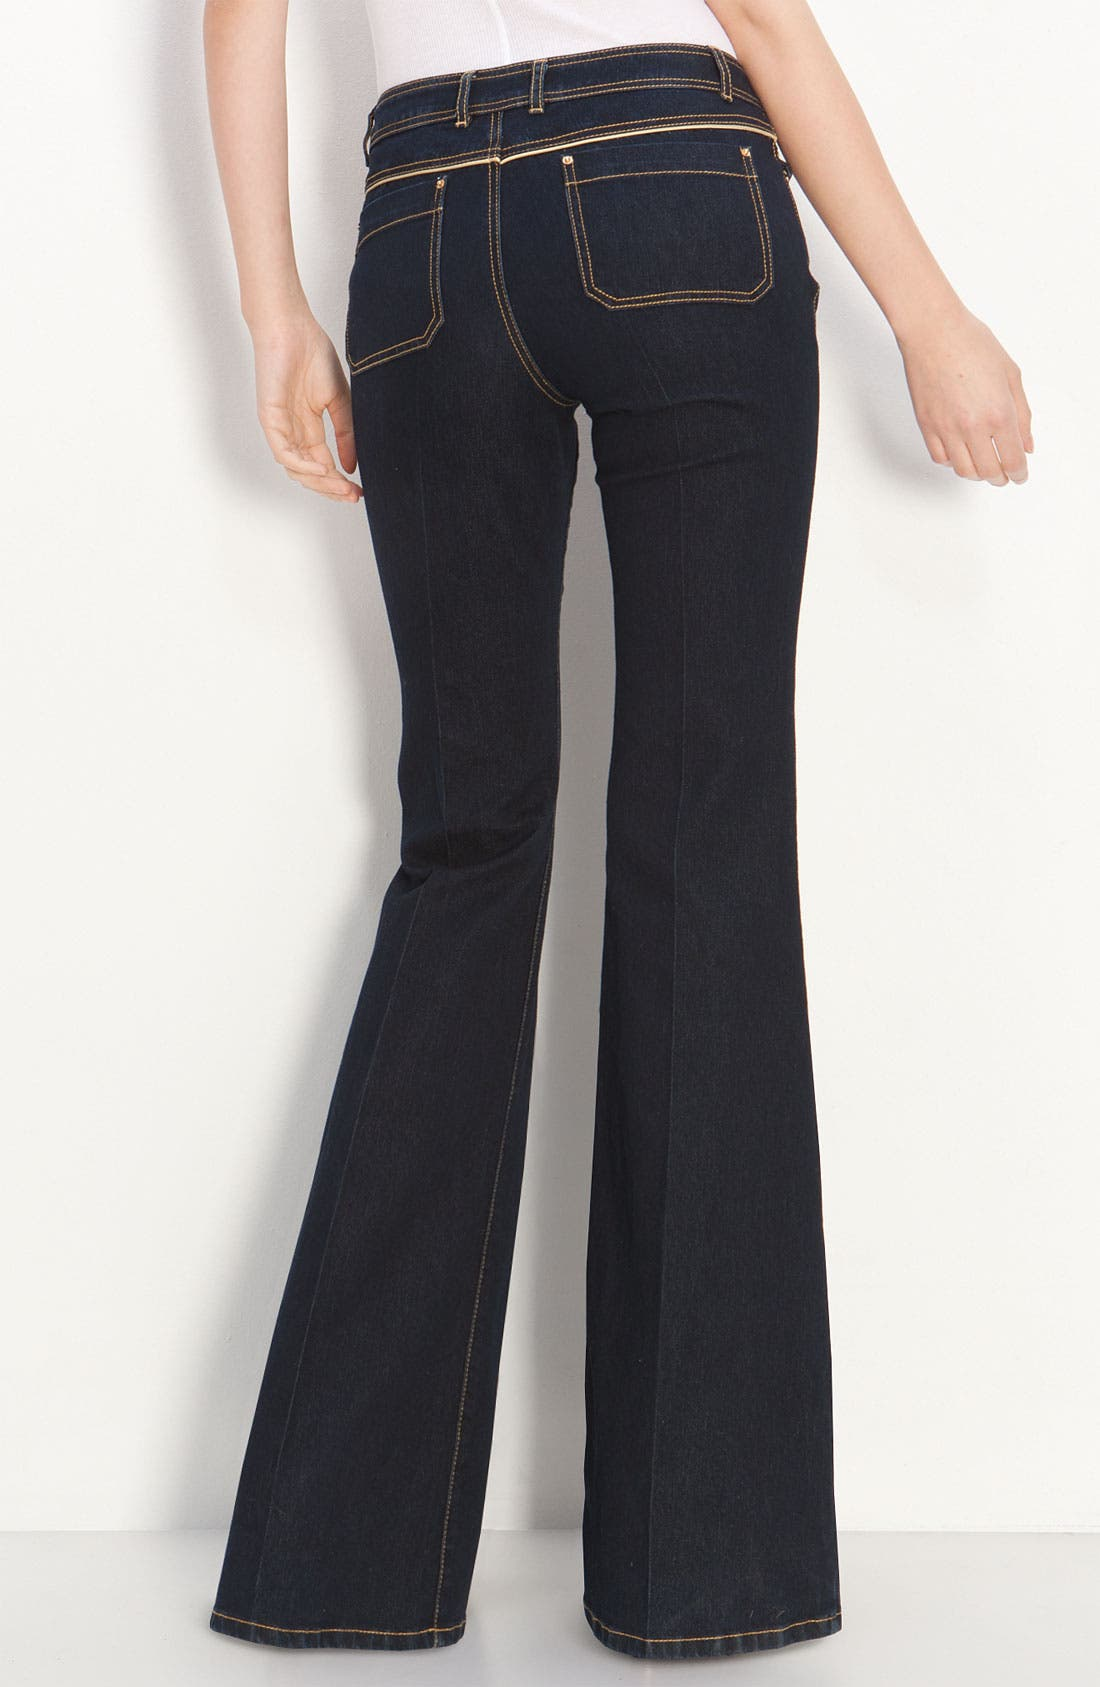 Main Image - Rachel Zoe Piped Flare Leg Jeans (Long)